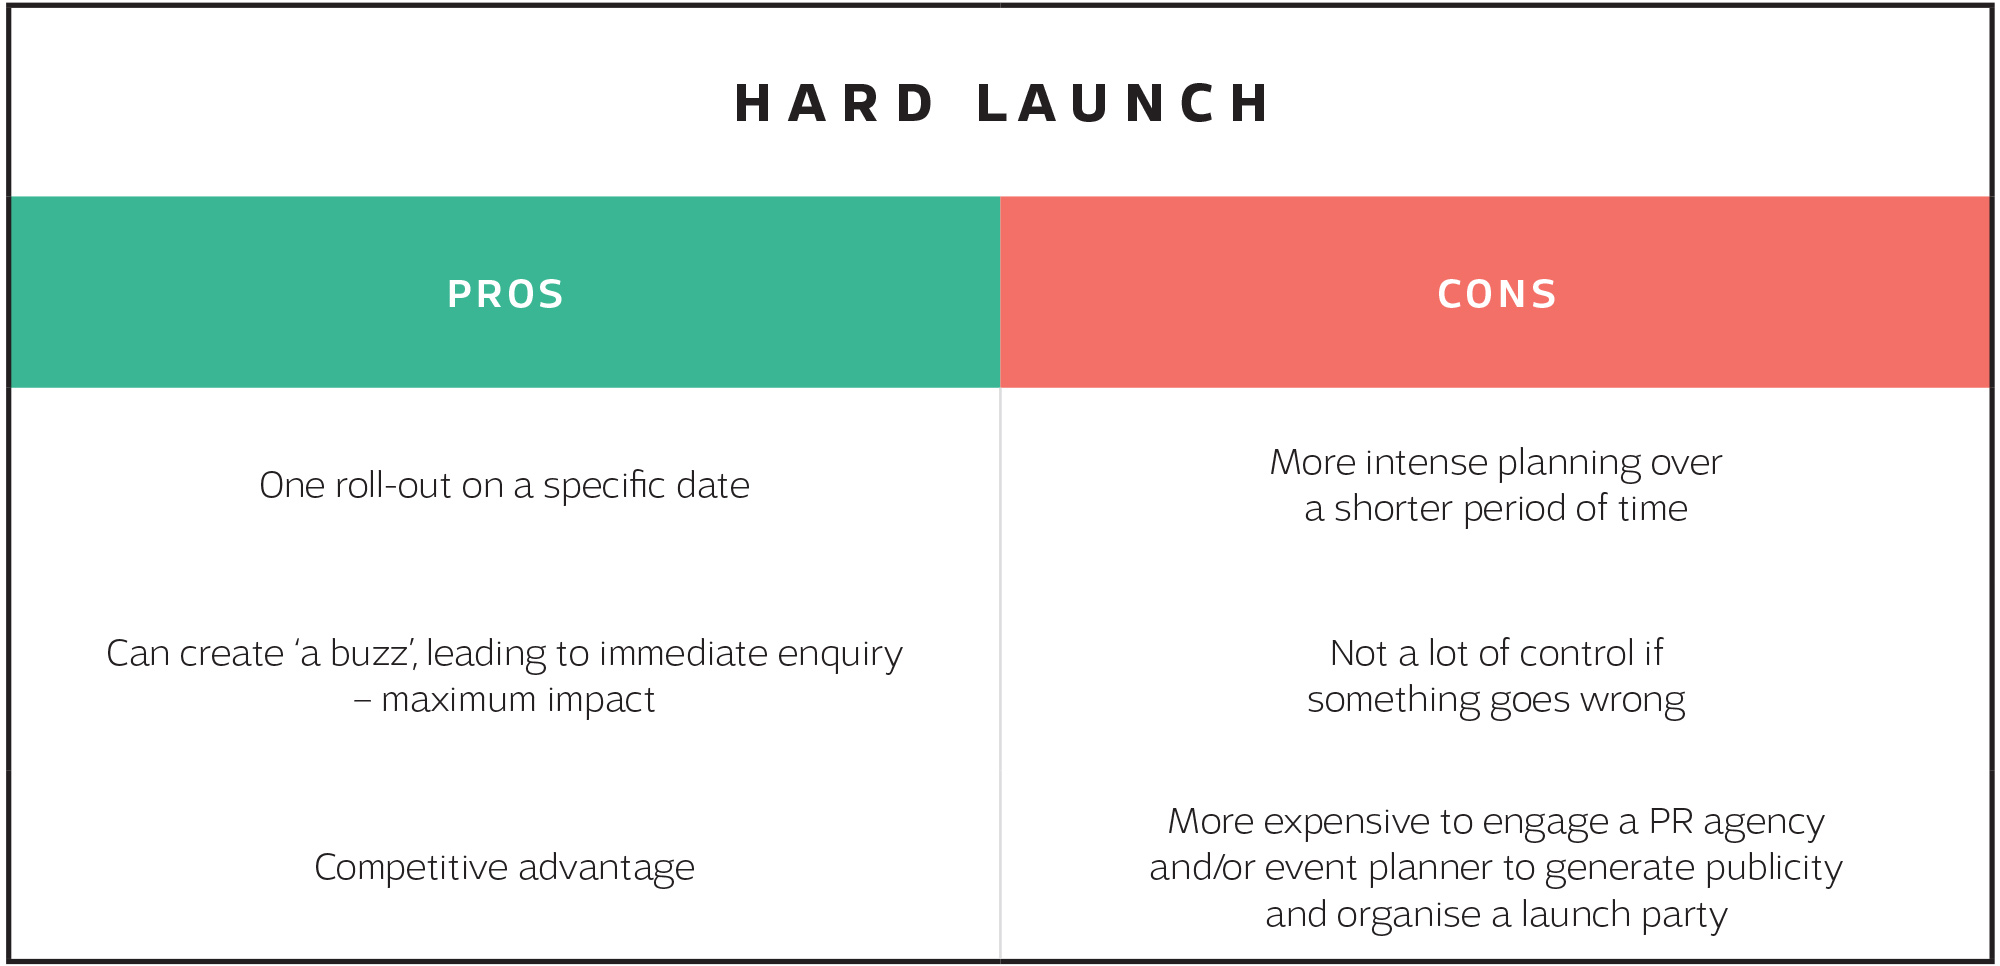 Table about the pros and cons of a hard launch on blog article by Sketch Corp.